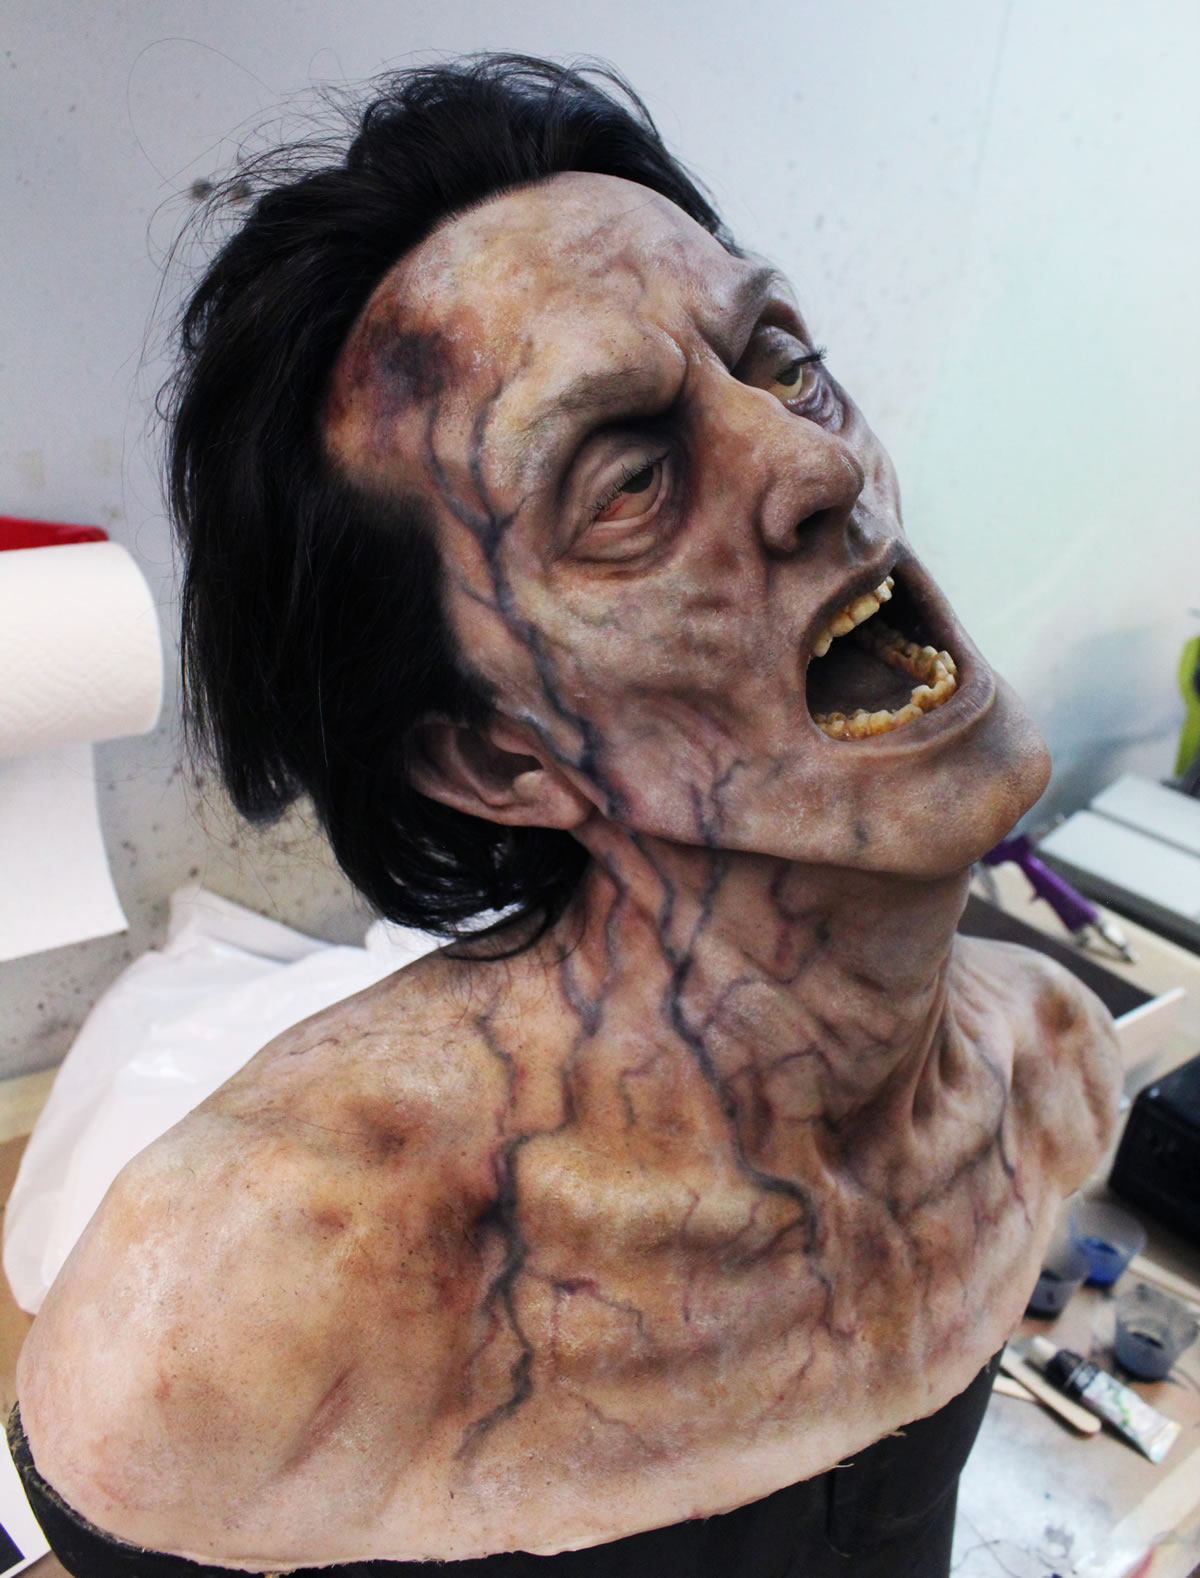 Dehydrated head for the IFC series 'Stan Against Evil'